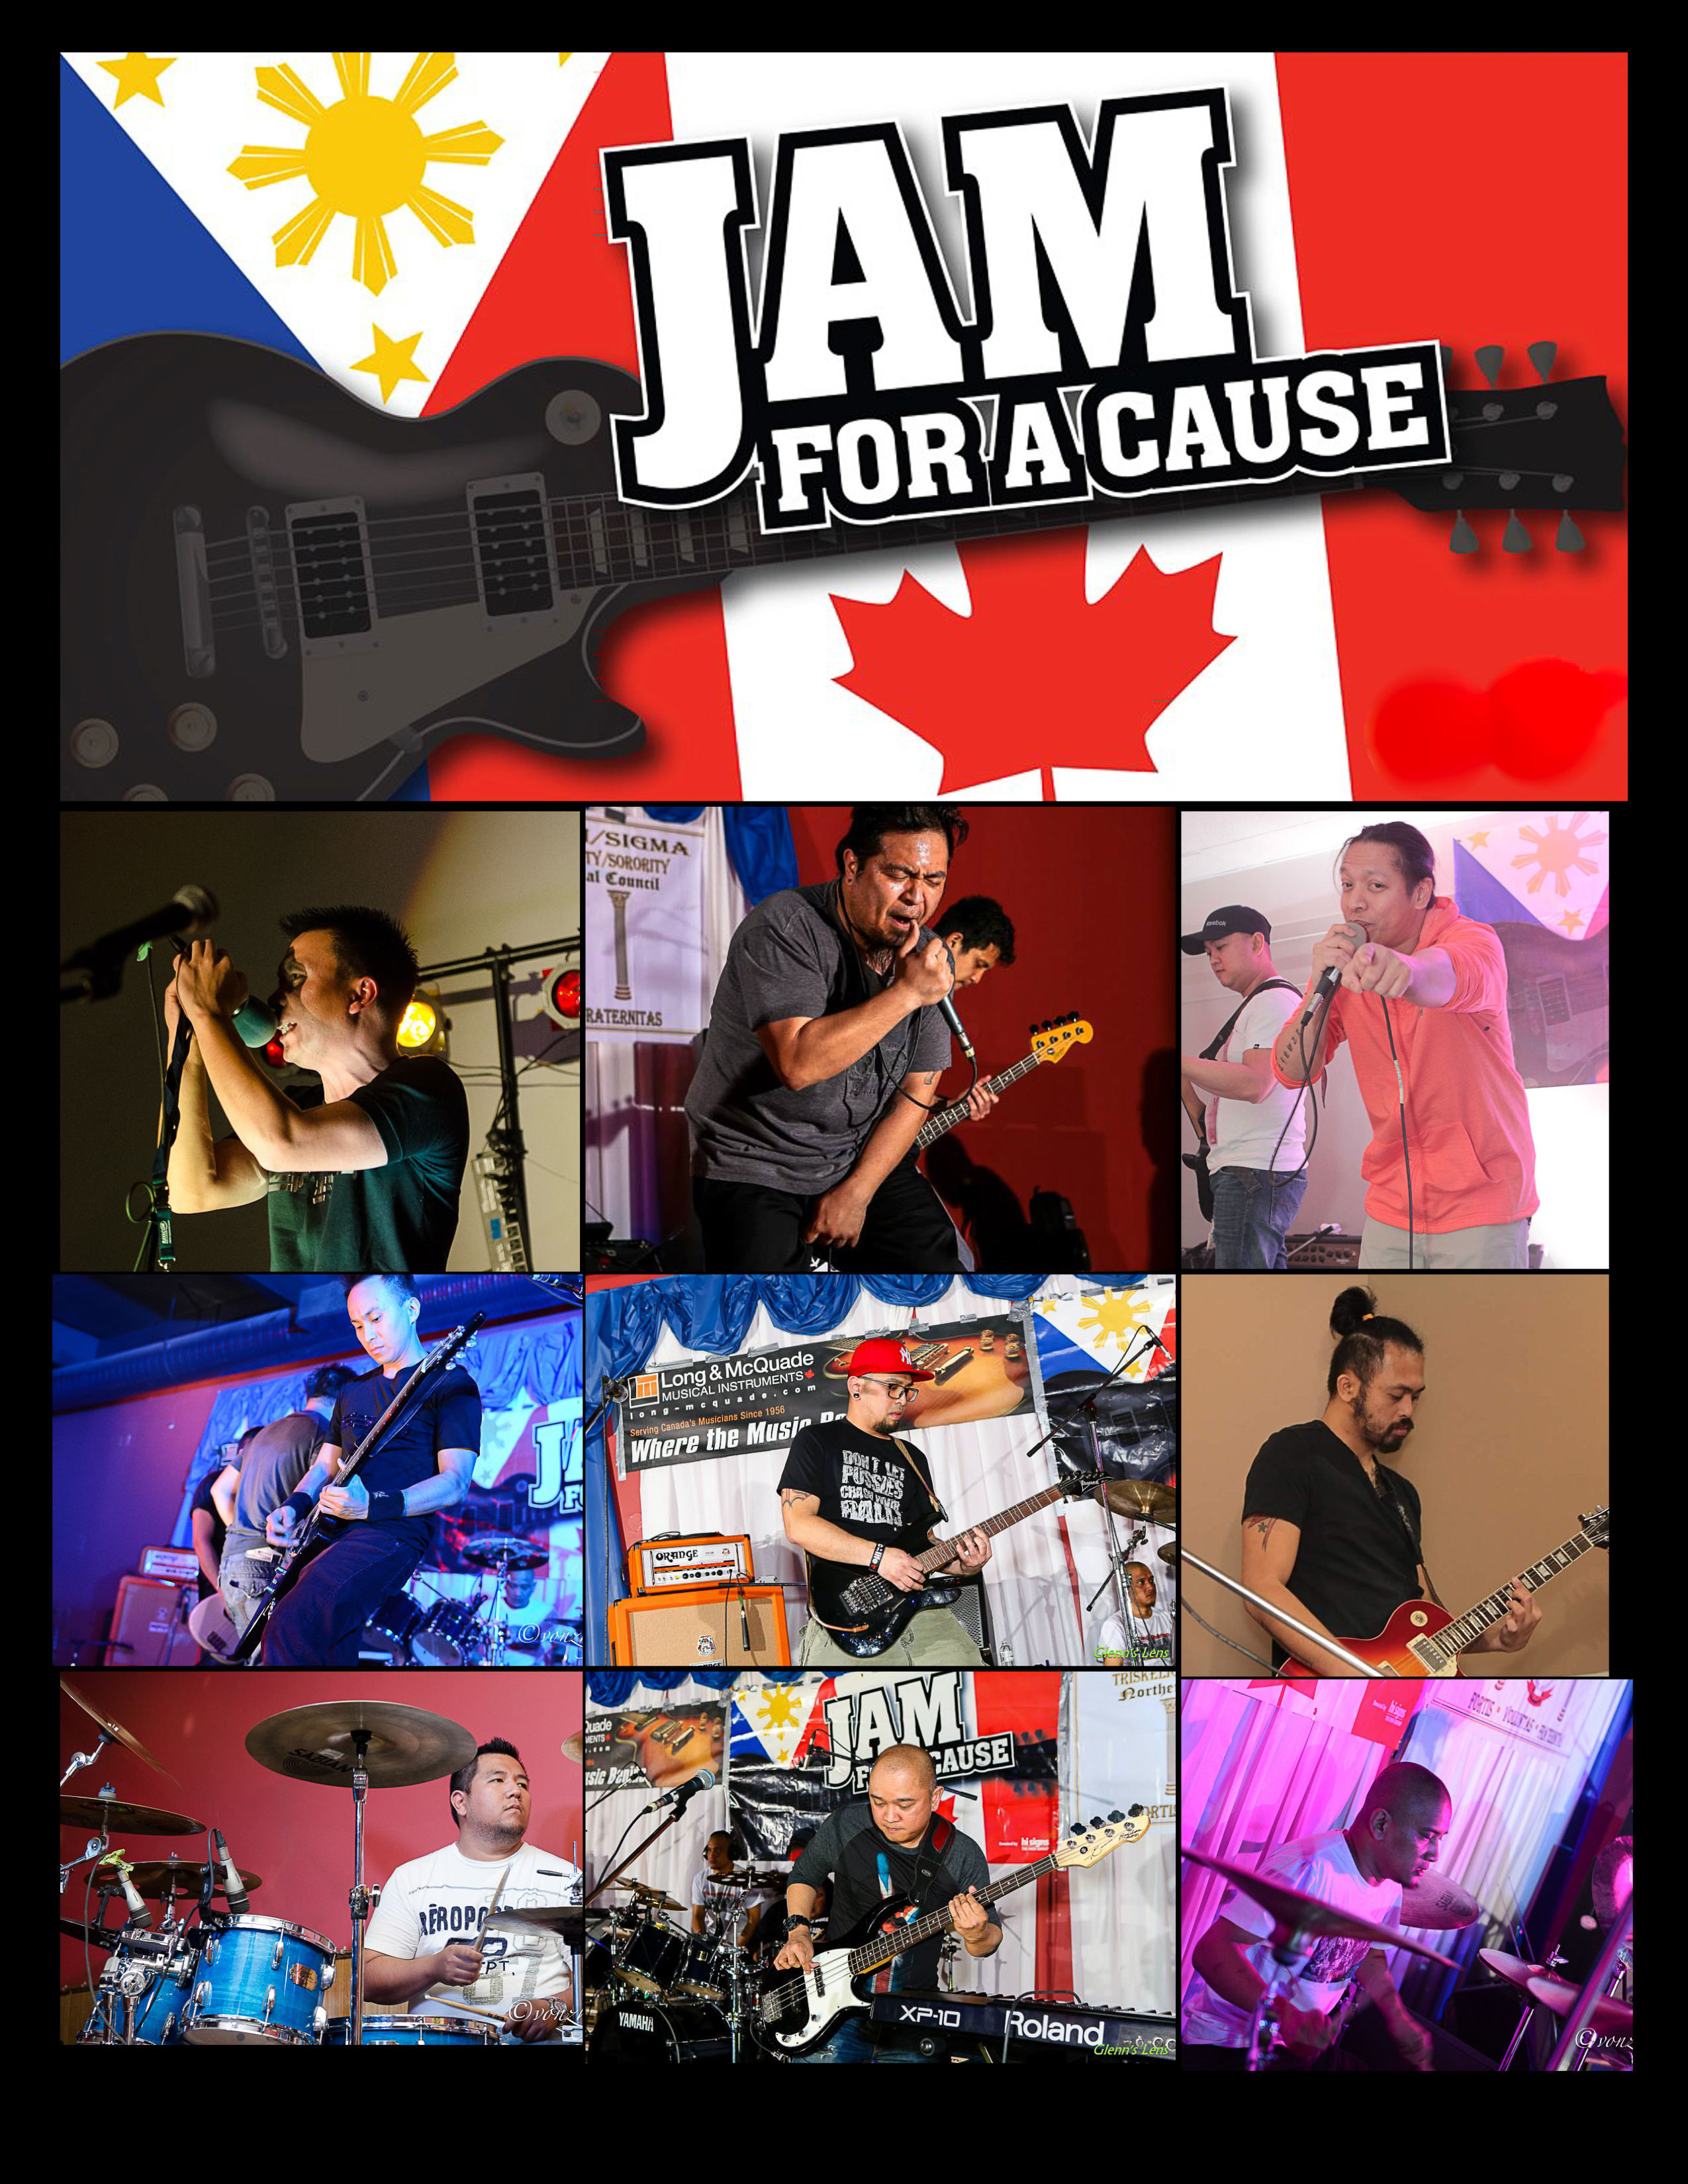 Jam for a Cause Society